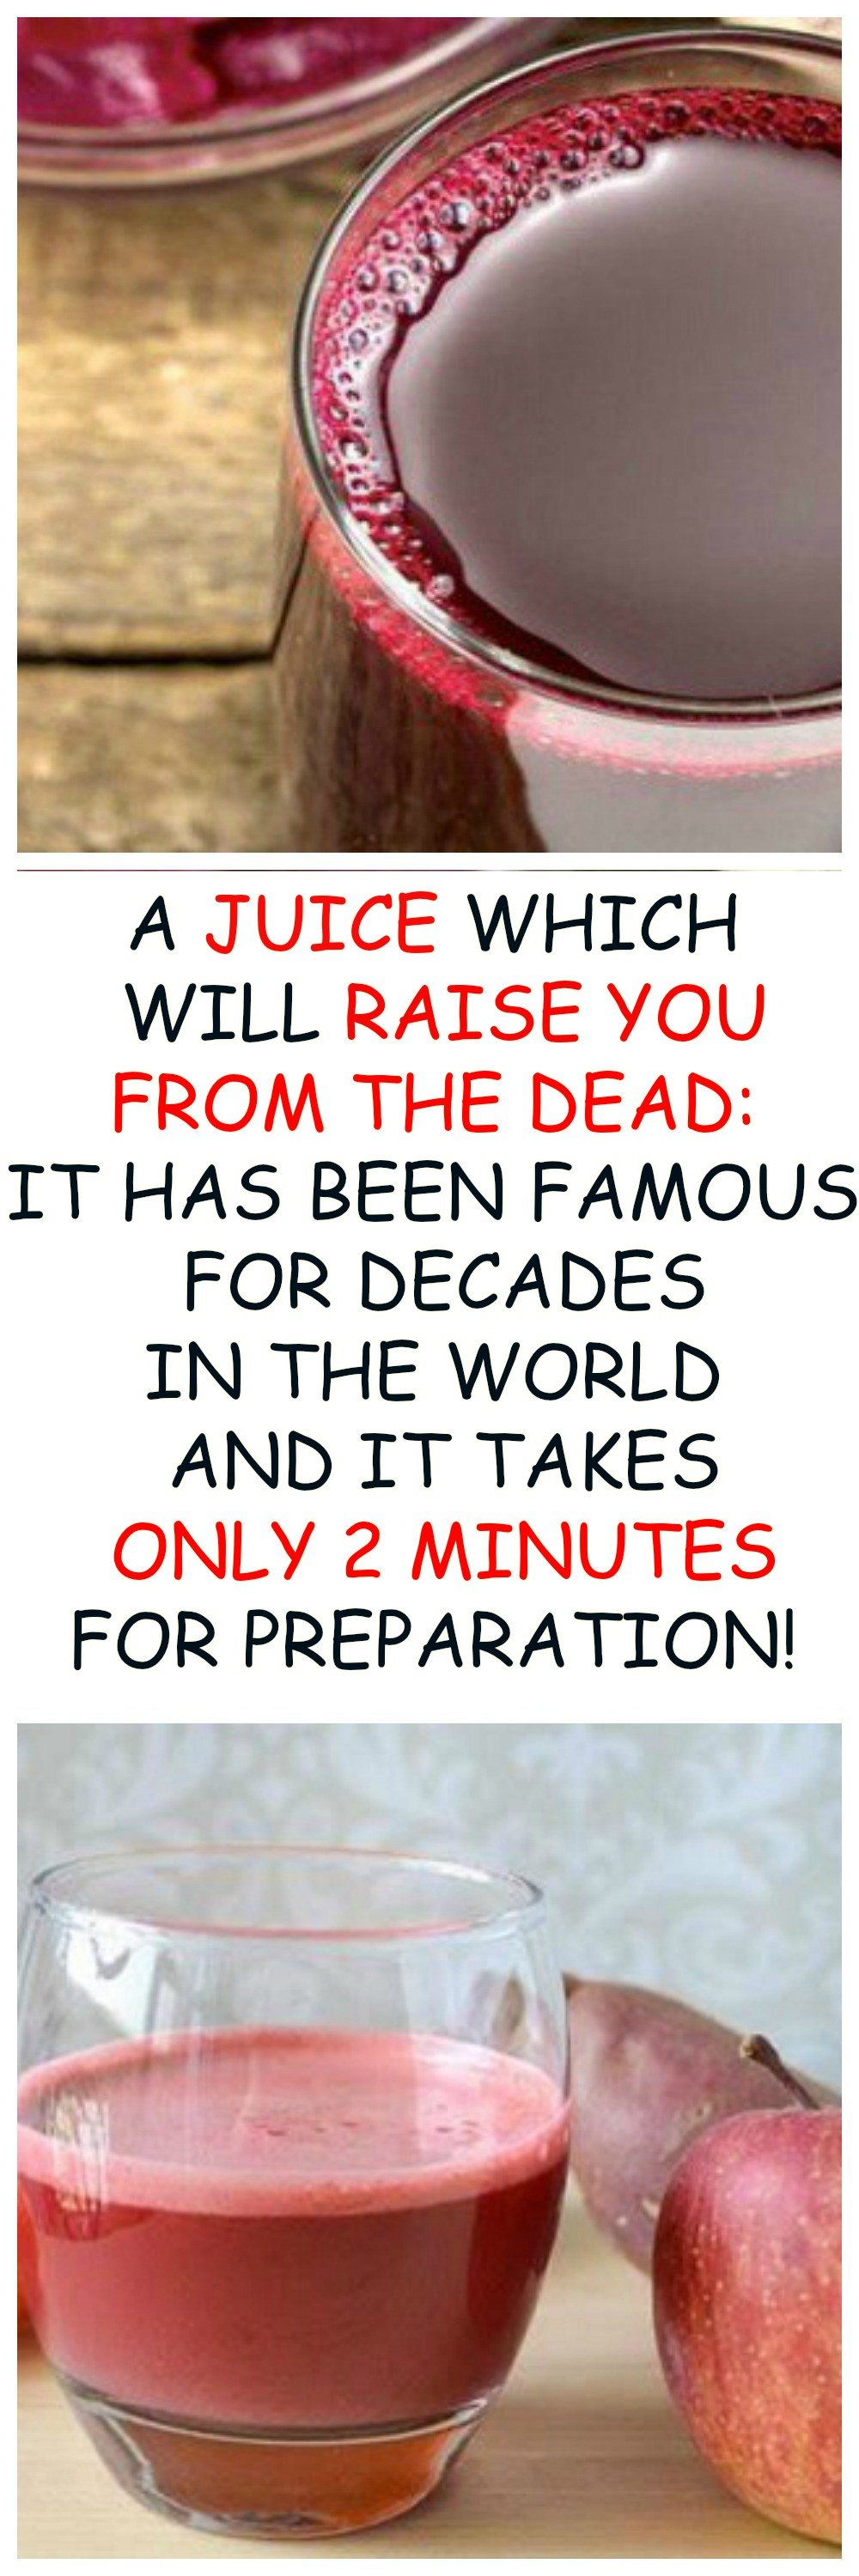 A JUICE WHICH WILL RAISE YOU FROM THE DEAD: IT HAS BEEN FAMOUS FOR DECADES IN THE WORLD AND IT TAKES ONLY 2 MINUTES FOR